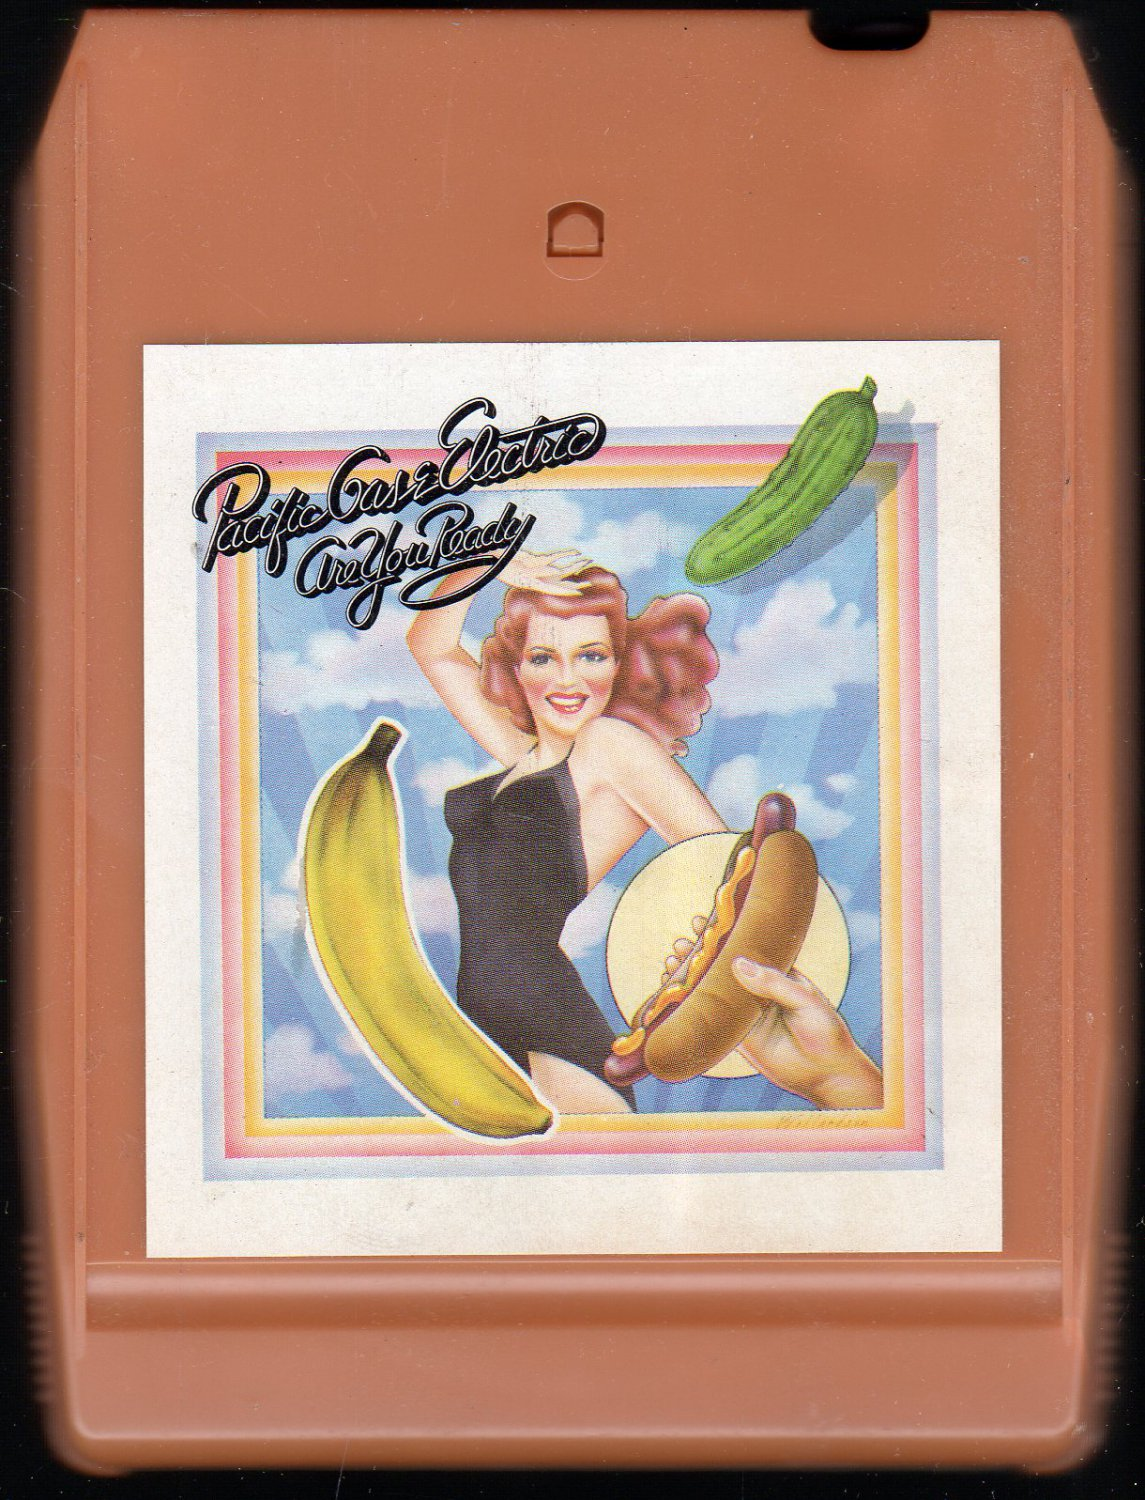 Pacific Gas & Electric - Are You Ready 1970 CBS A19A 8-track tape